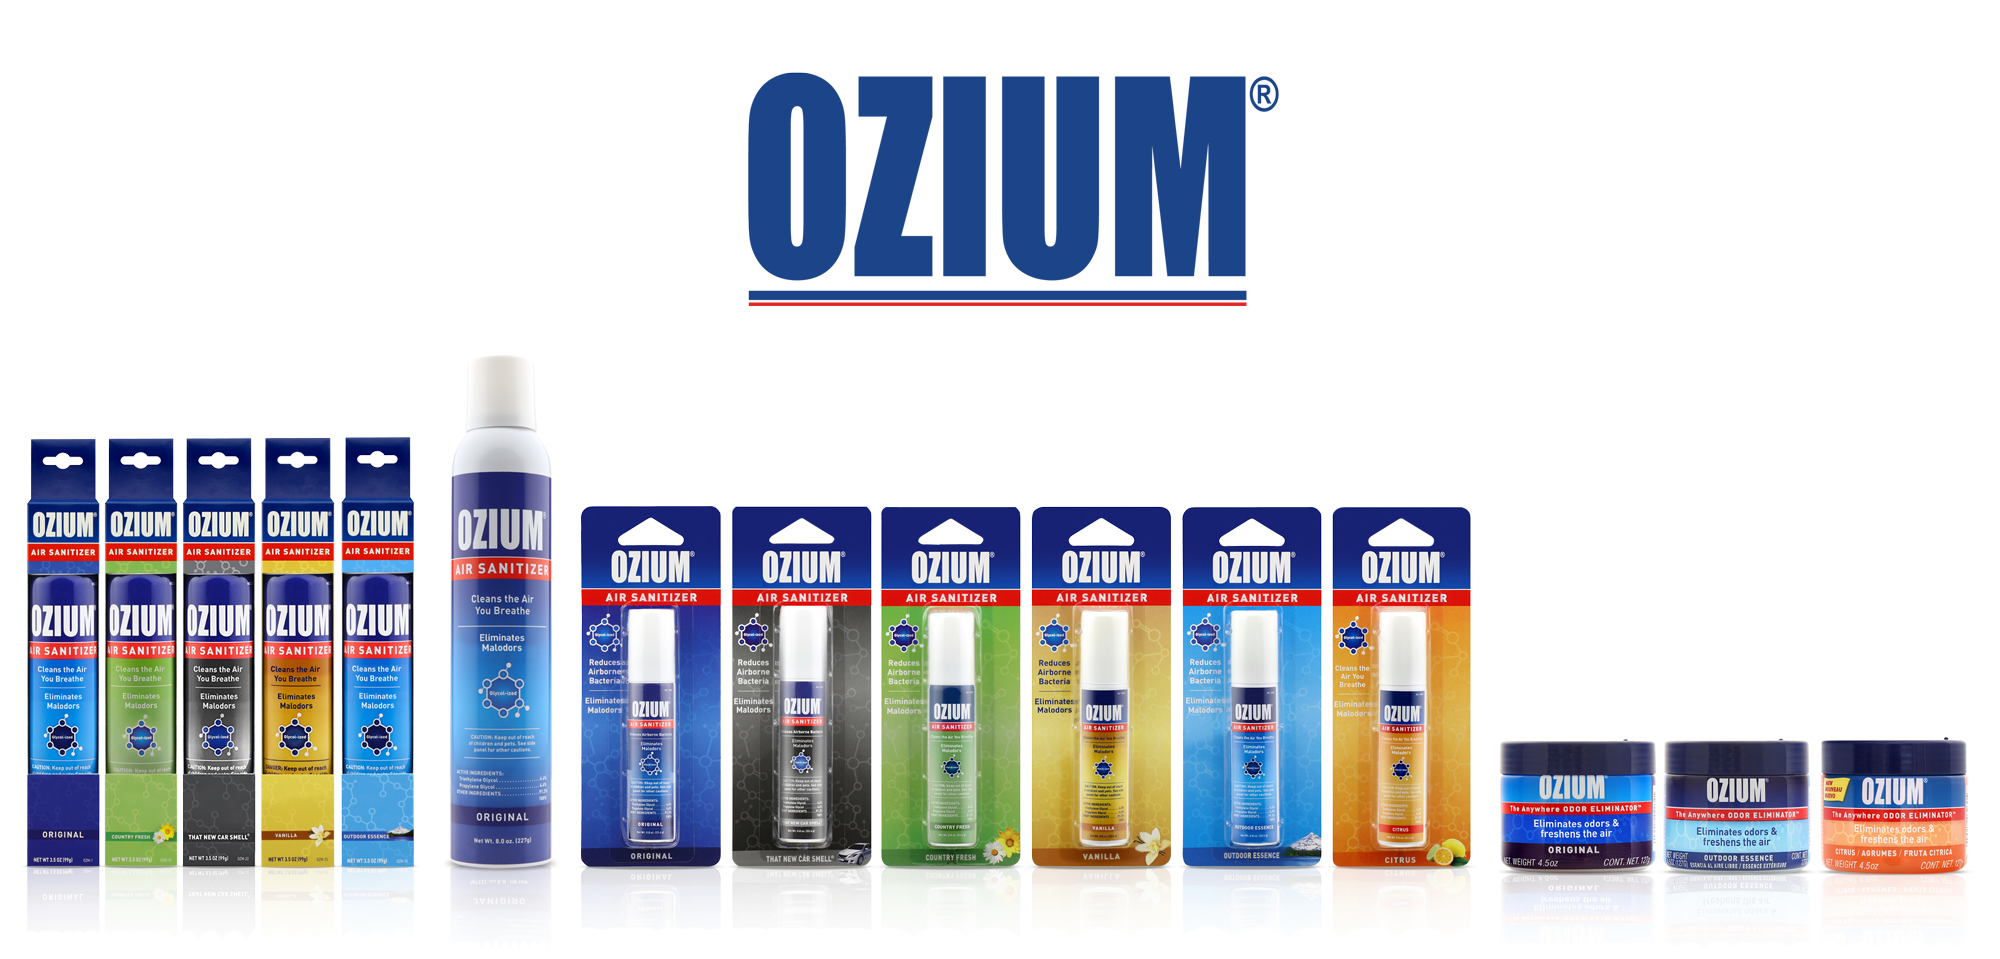 OZIUM® Air Care from APF fights airborne germs and eliminates odors.